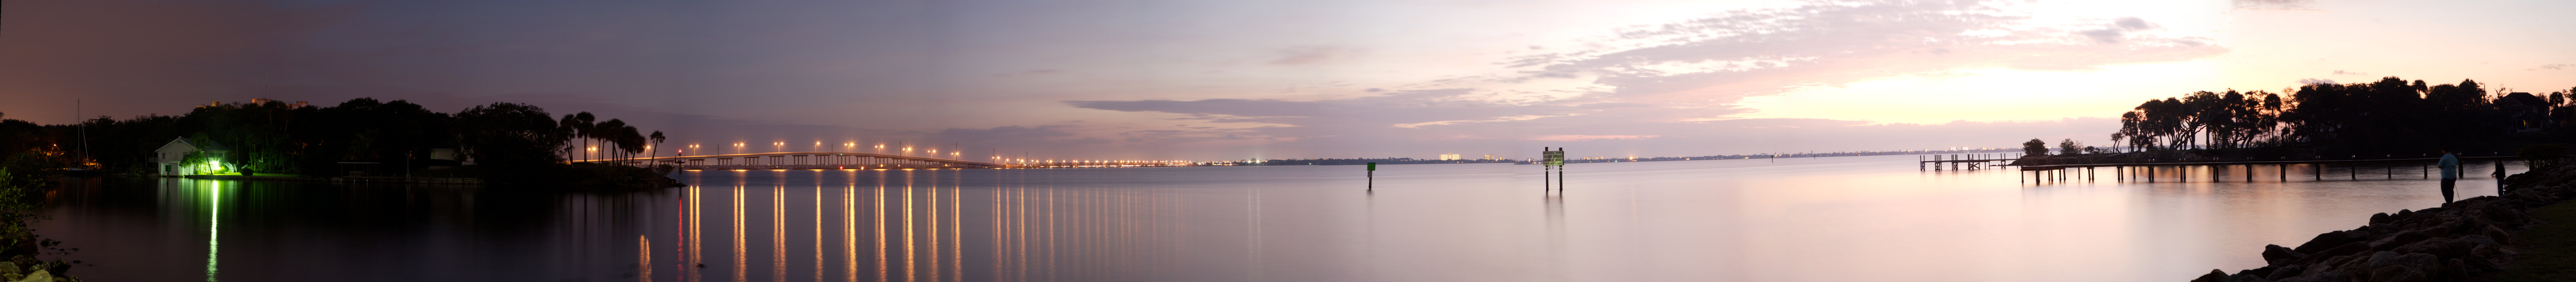 Stitched Panorama of the Intracoastal Waterway